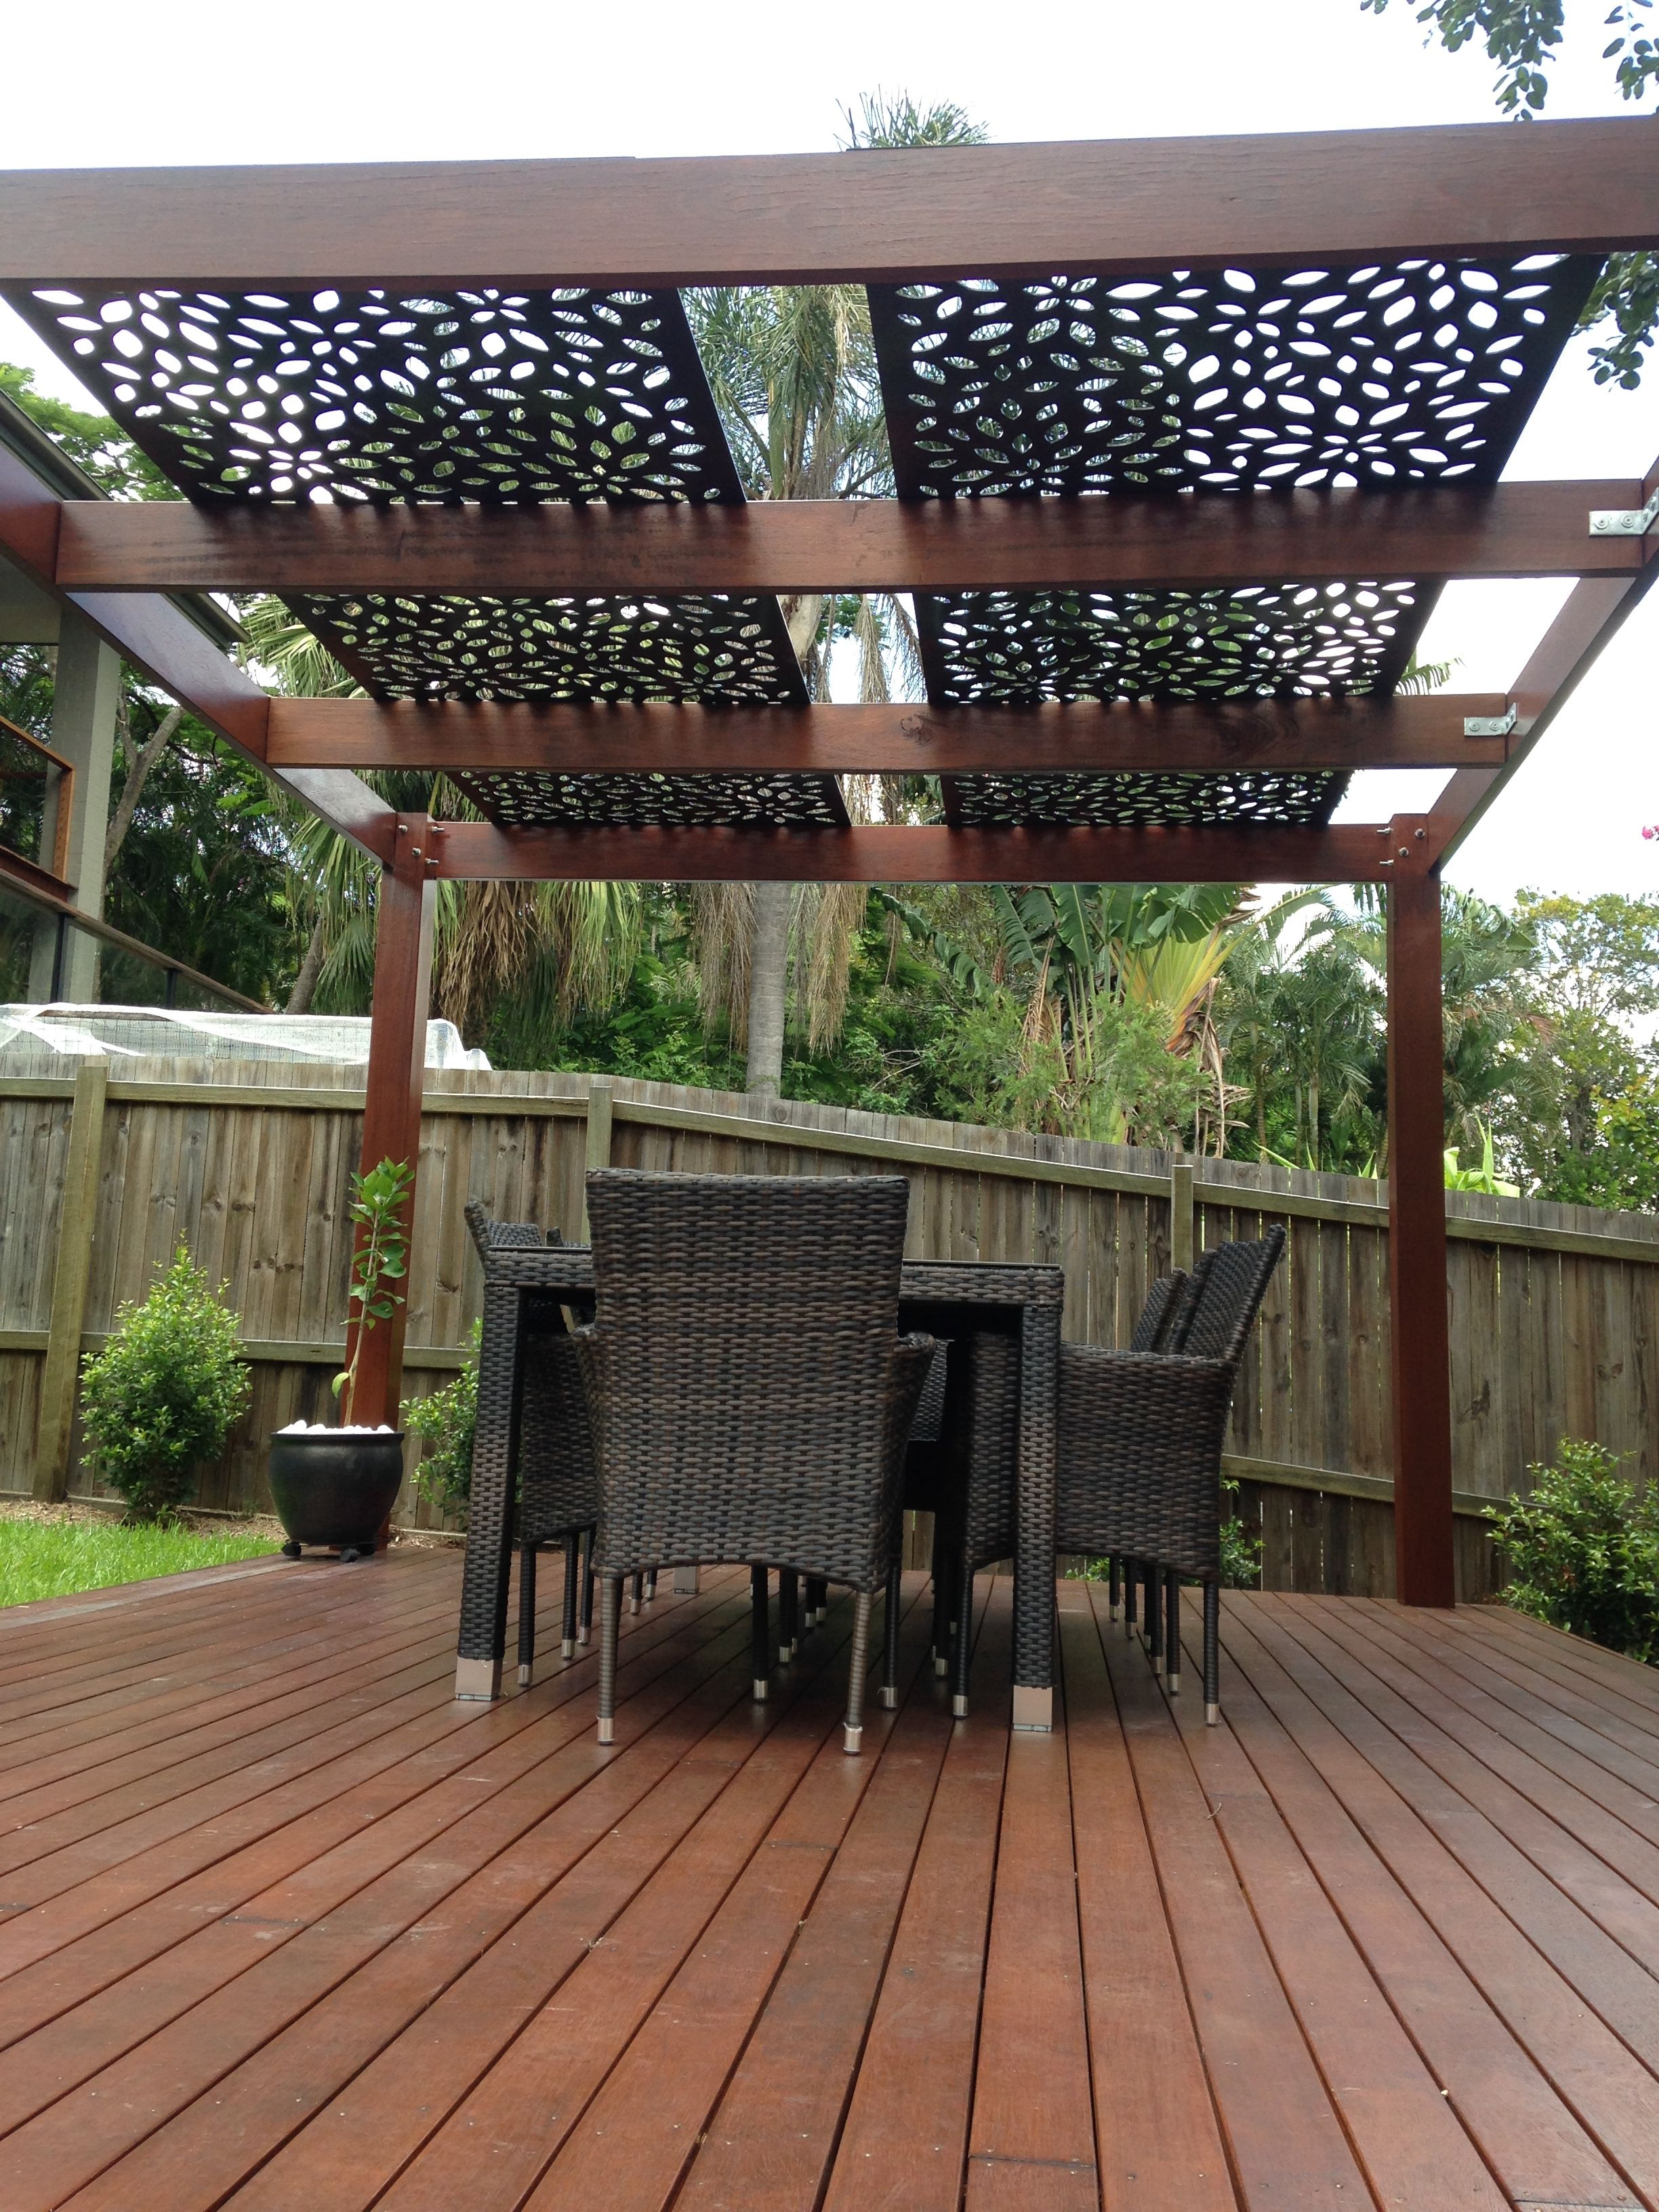 decorative screening on pergola roof privacy screens. Black Bedroom Furniture Sets. Home Design Ideas